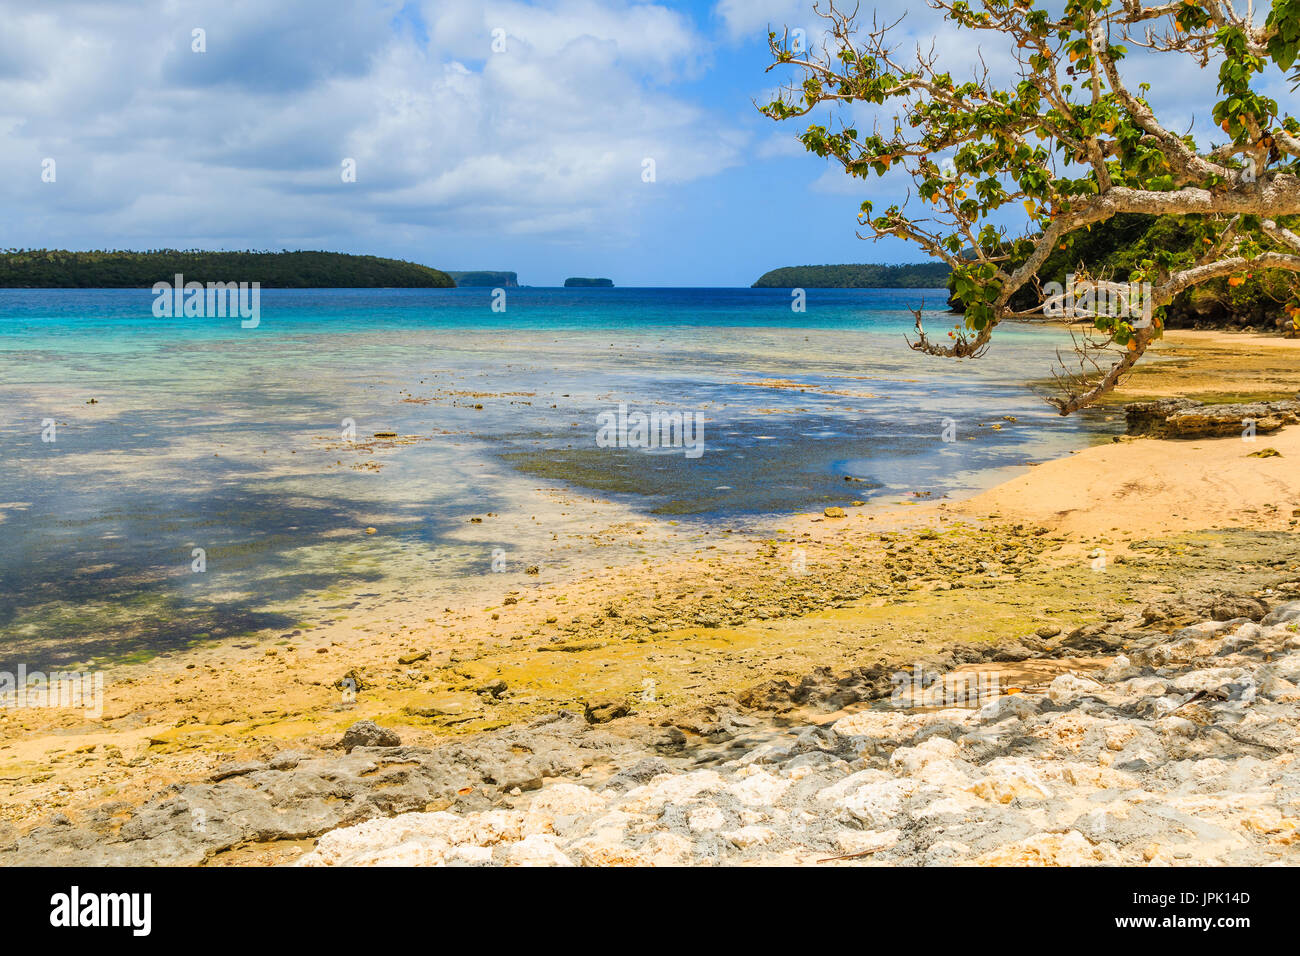 Vava'u archipelago, Neiafu, Tonga. View of tropical beach in the Vava`u island. - Stock Image